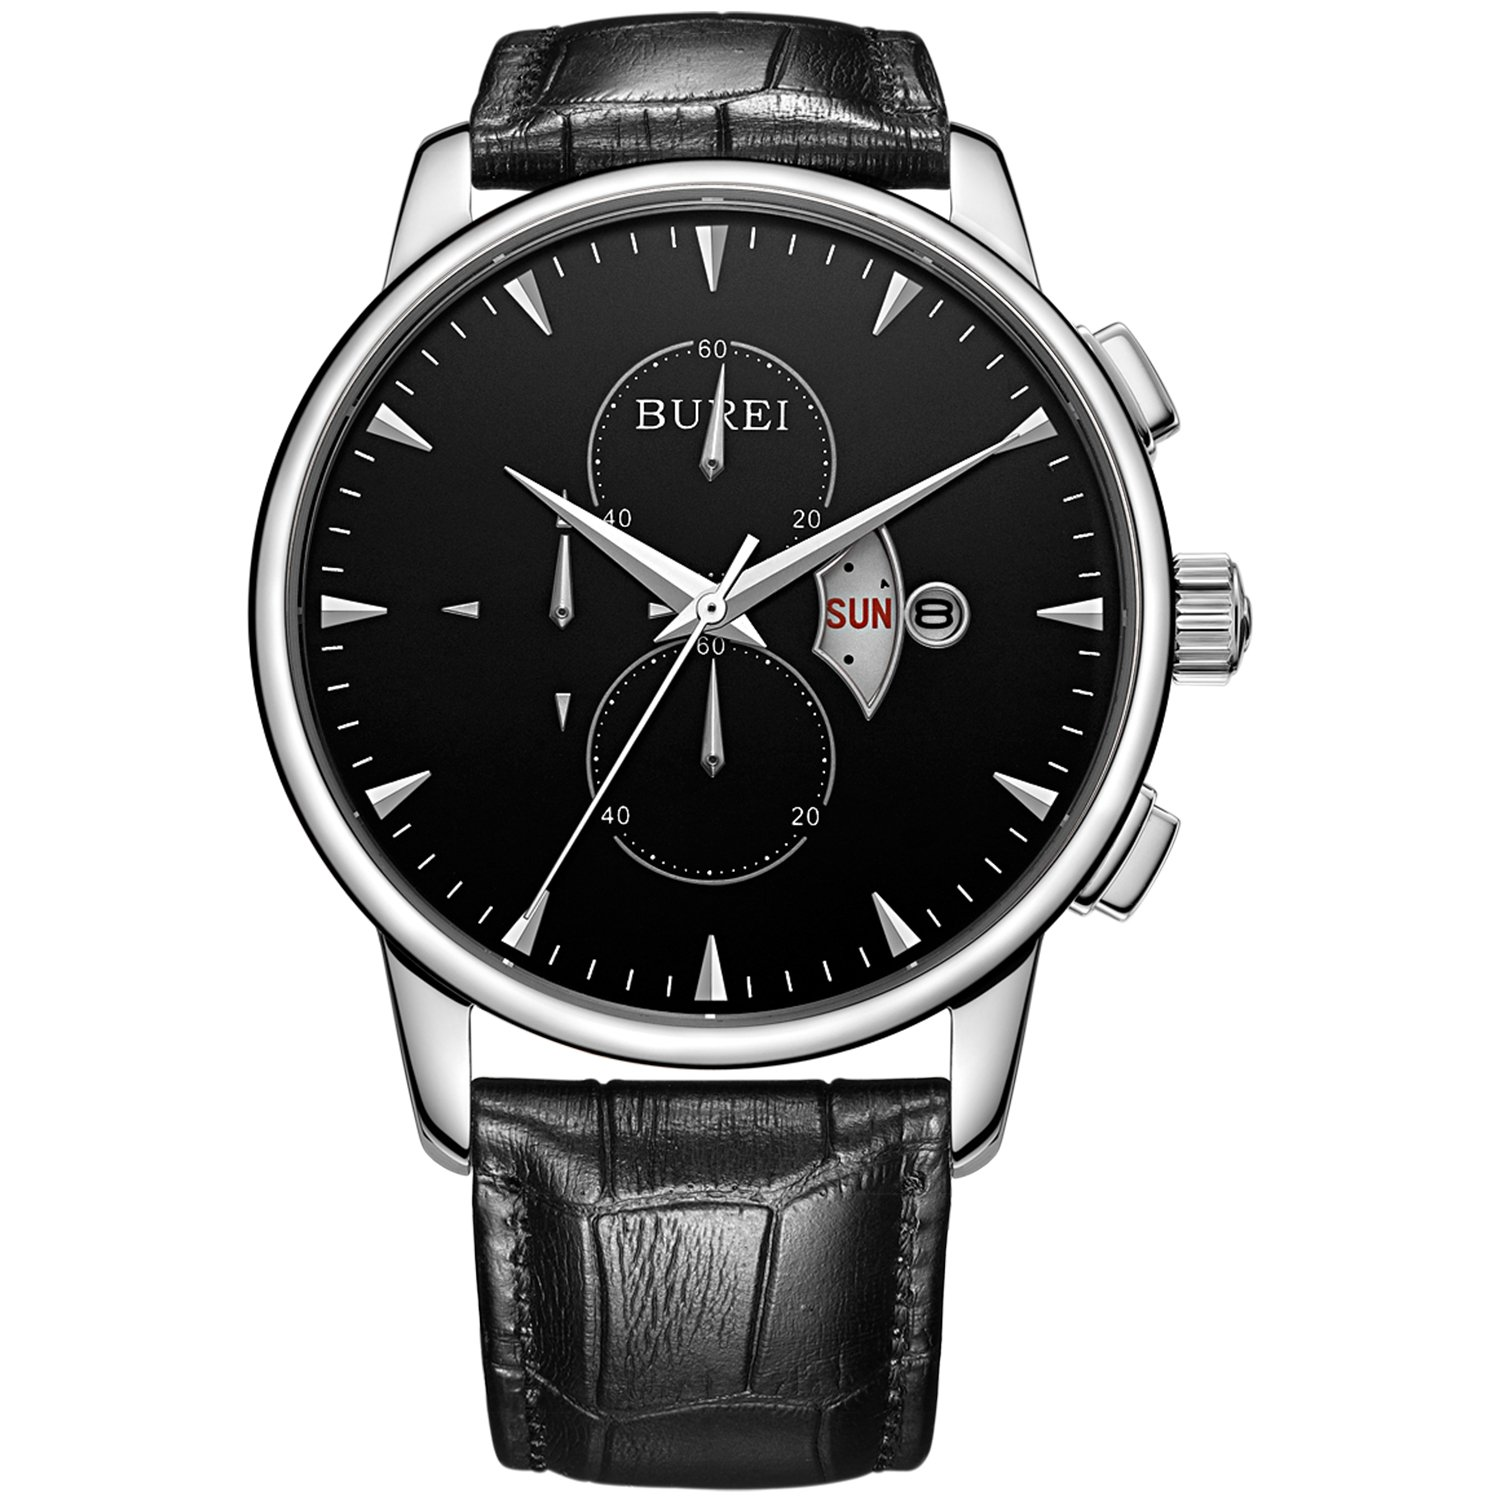 BUREI Men s 7003-P01EY Multifunction Day and Date Chronograph Sports Watch with Black Band